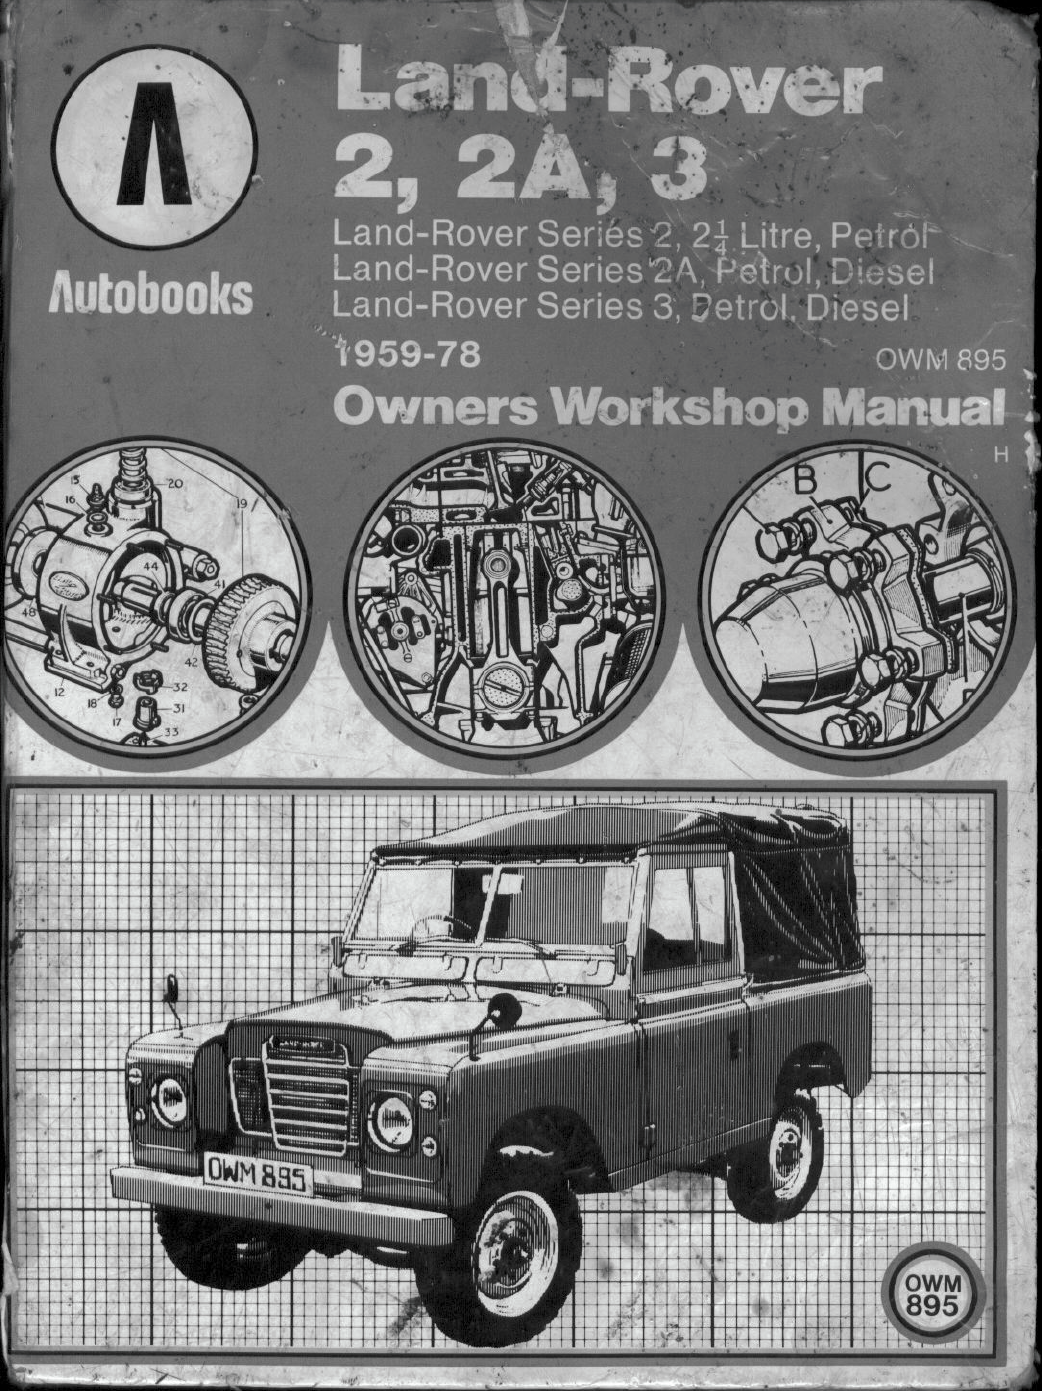 See our other Land Rover Series III Manuals: